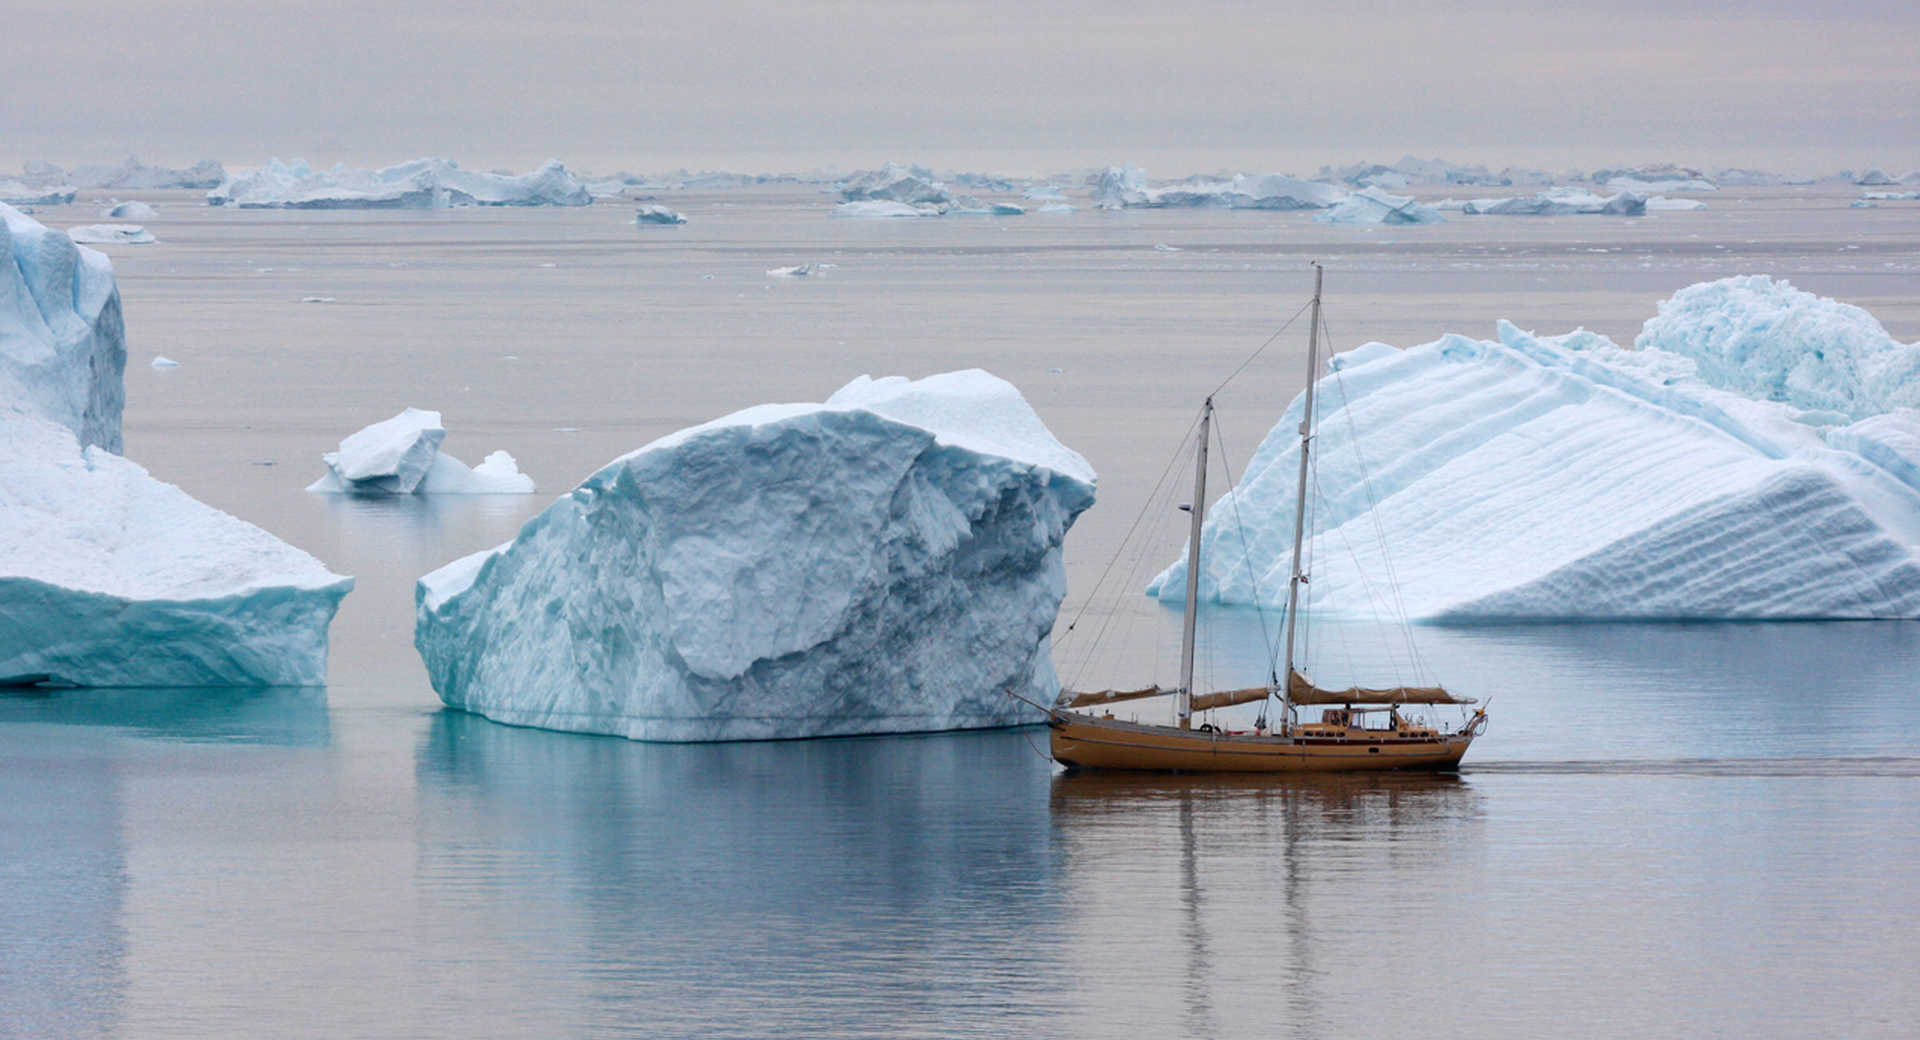 Photo du voilier la Louise Icebergs